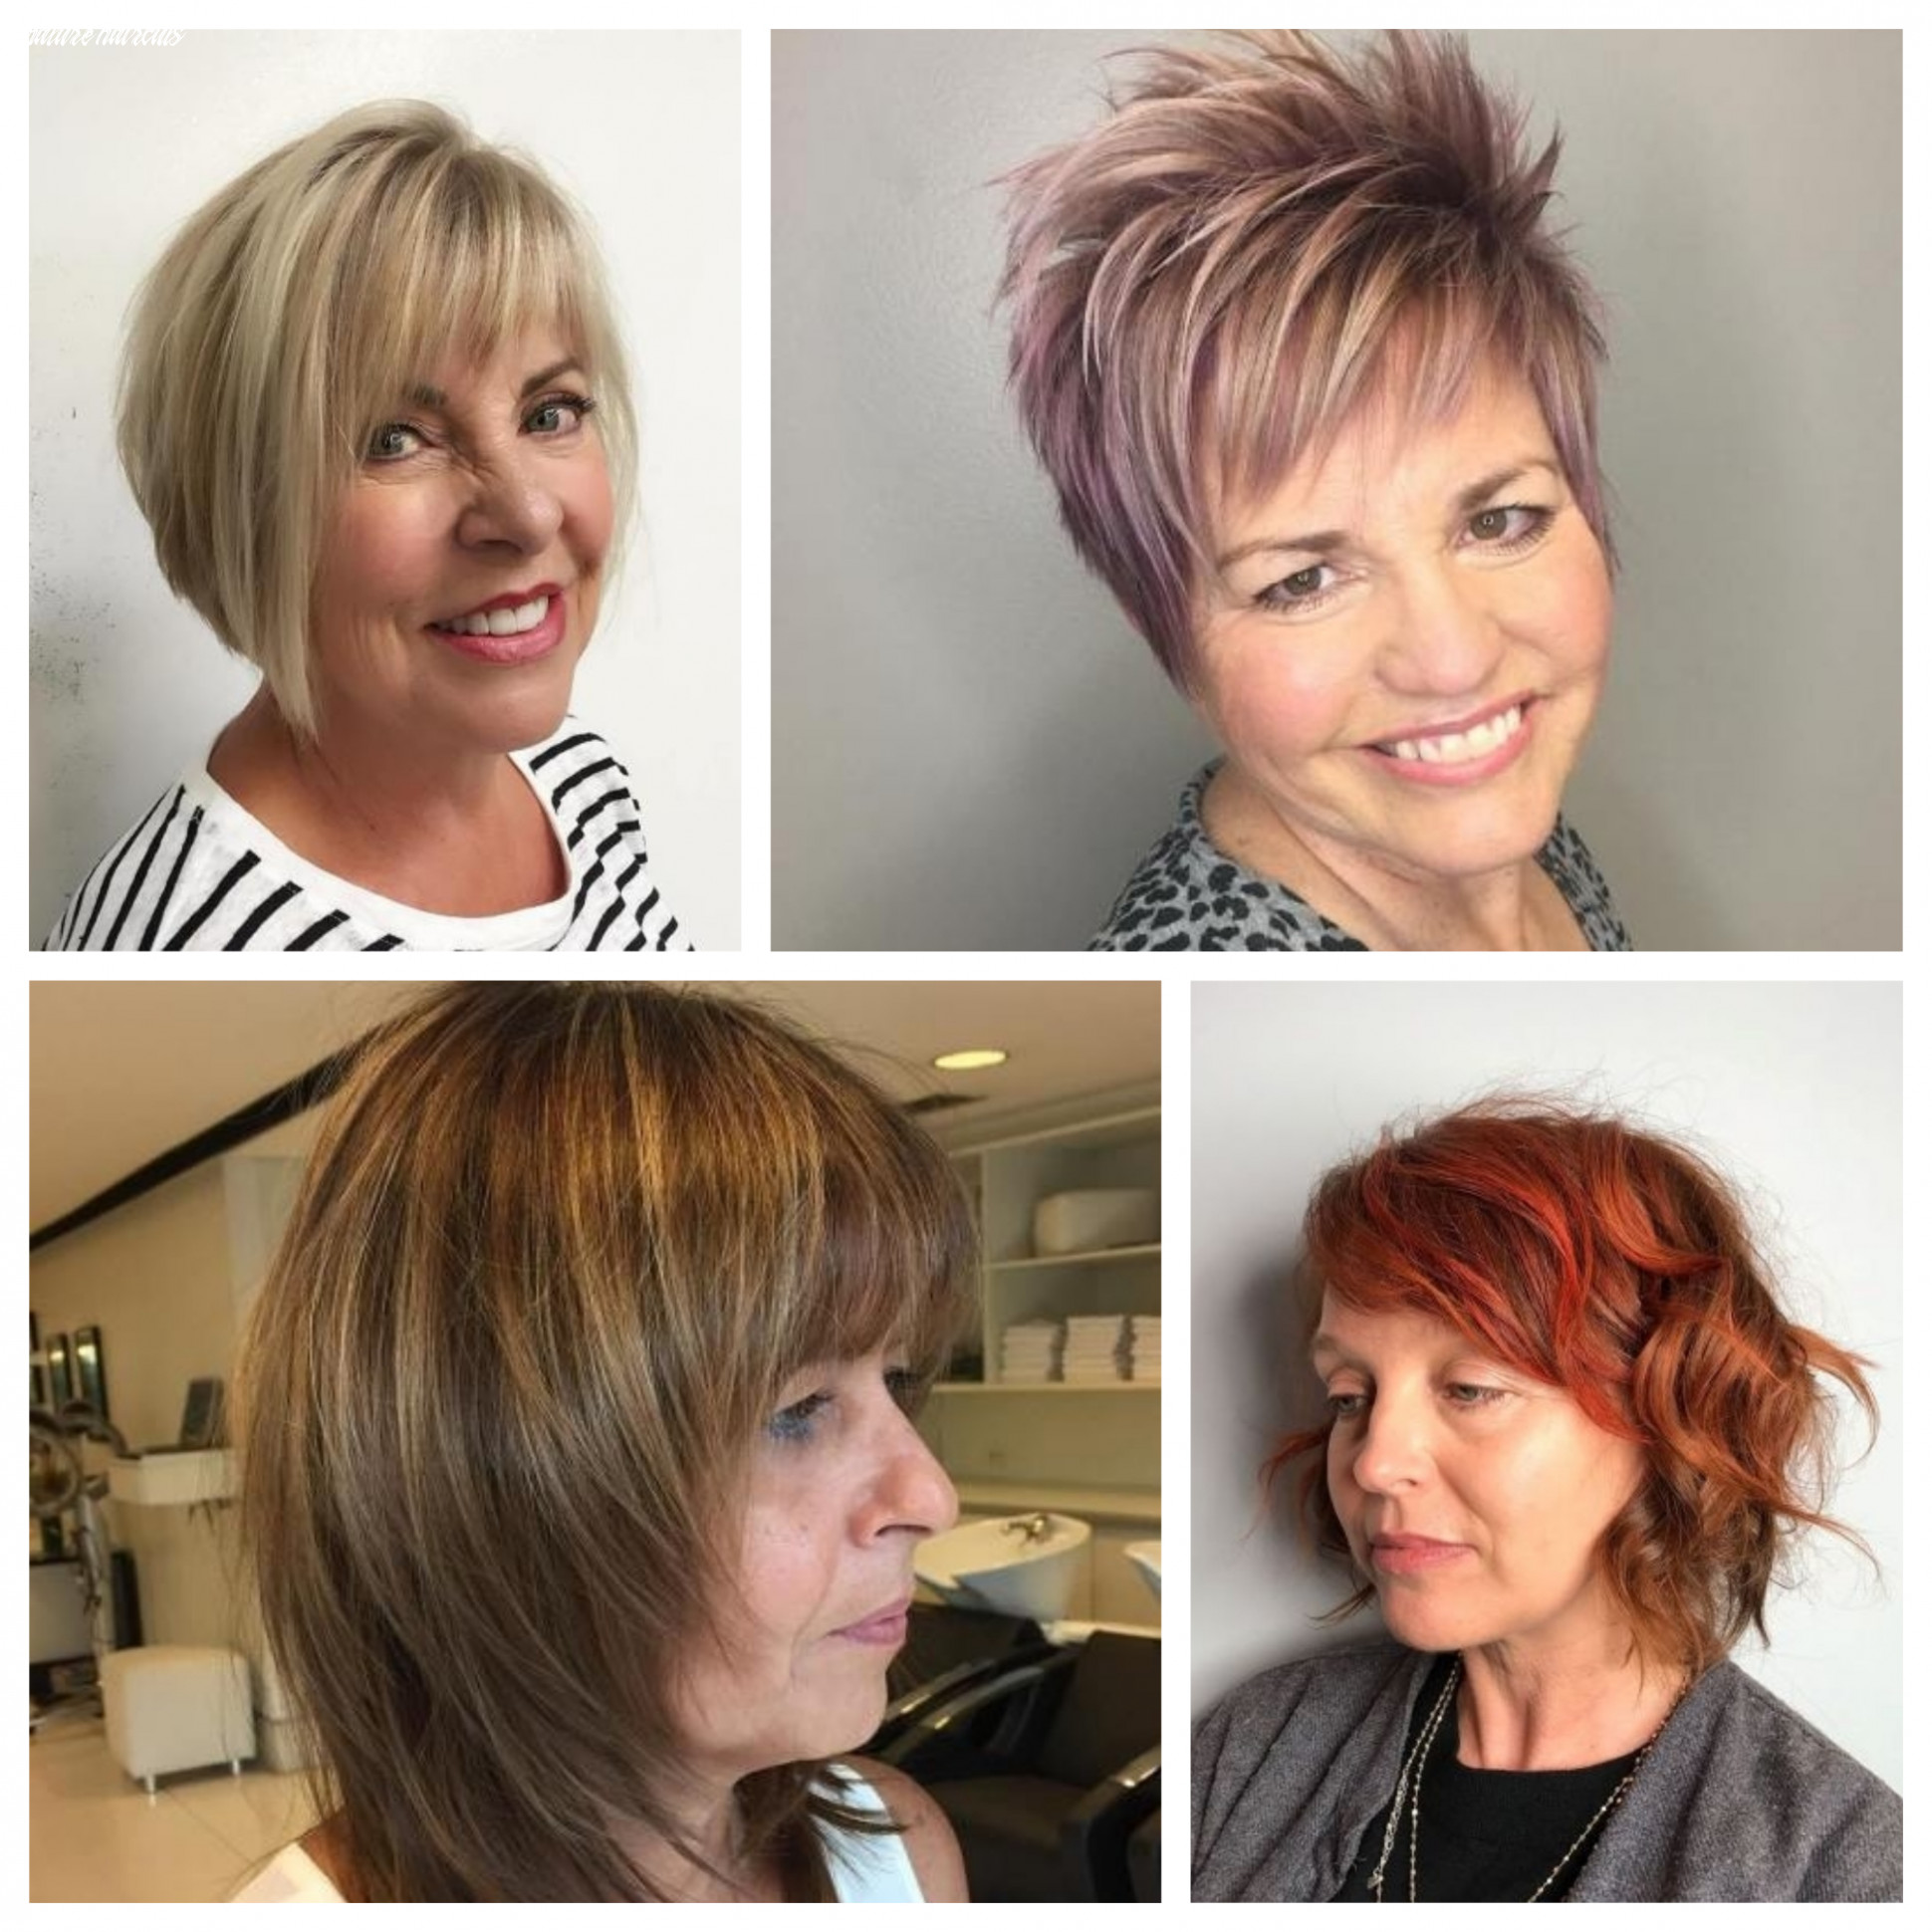 Hairstyles for Mature Women | 12 Haircuts, Hairstyles and Hair ...